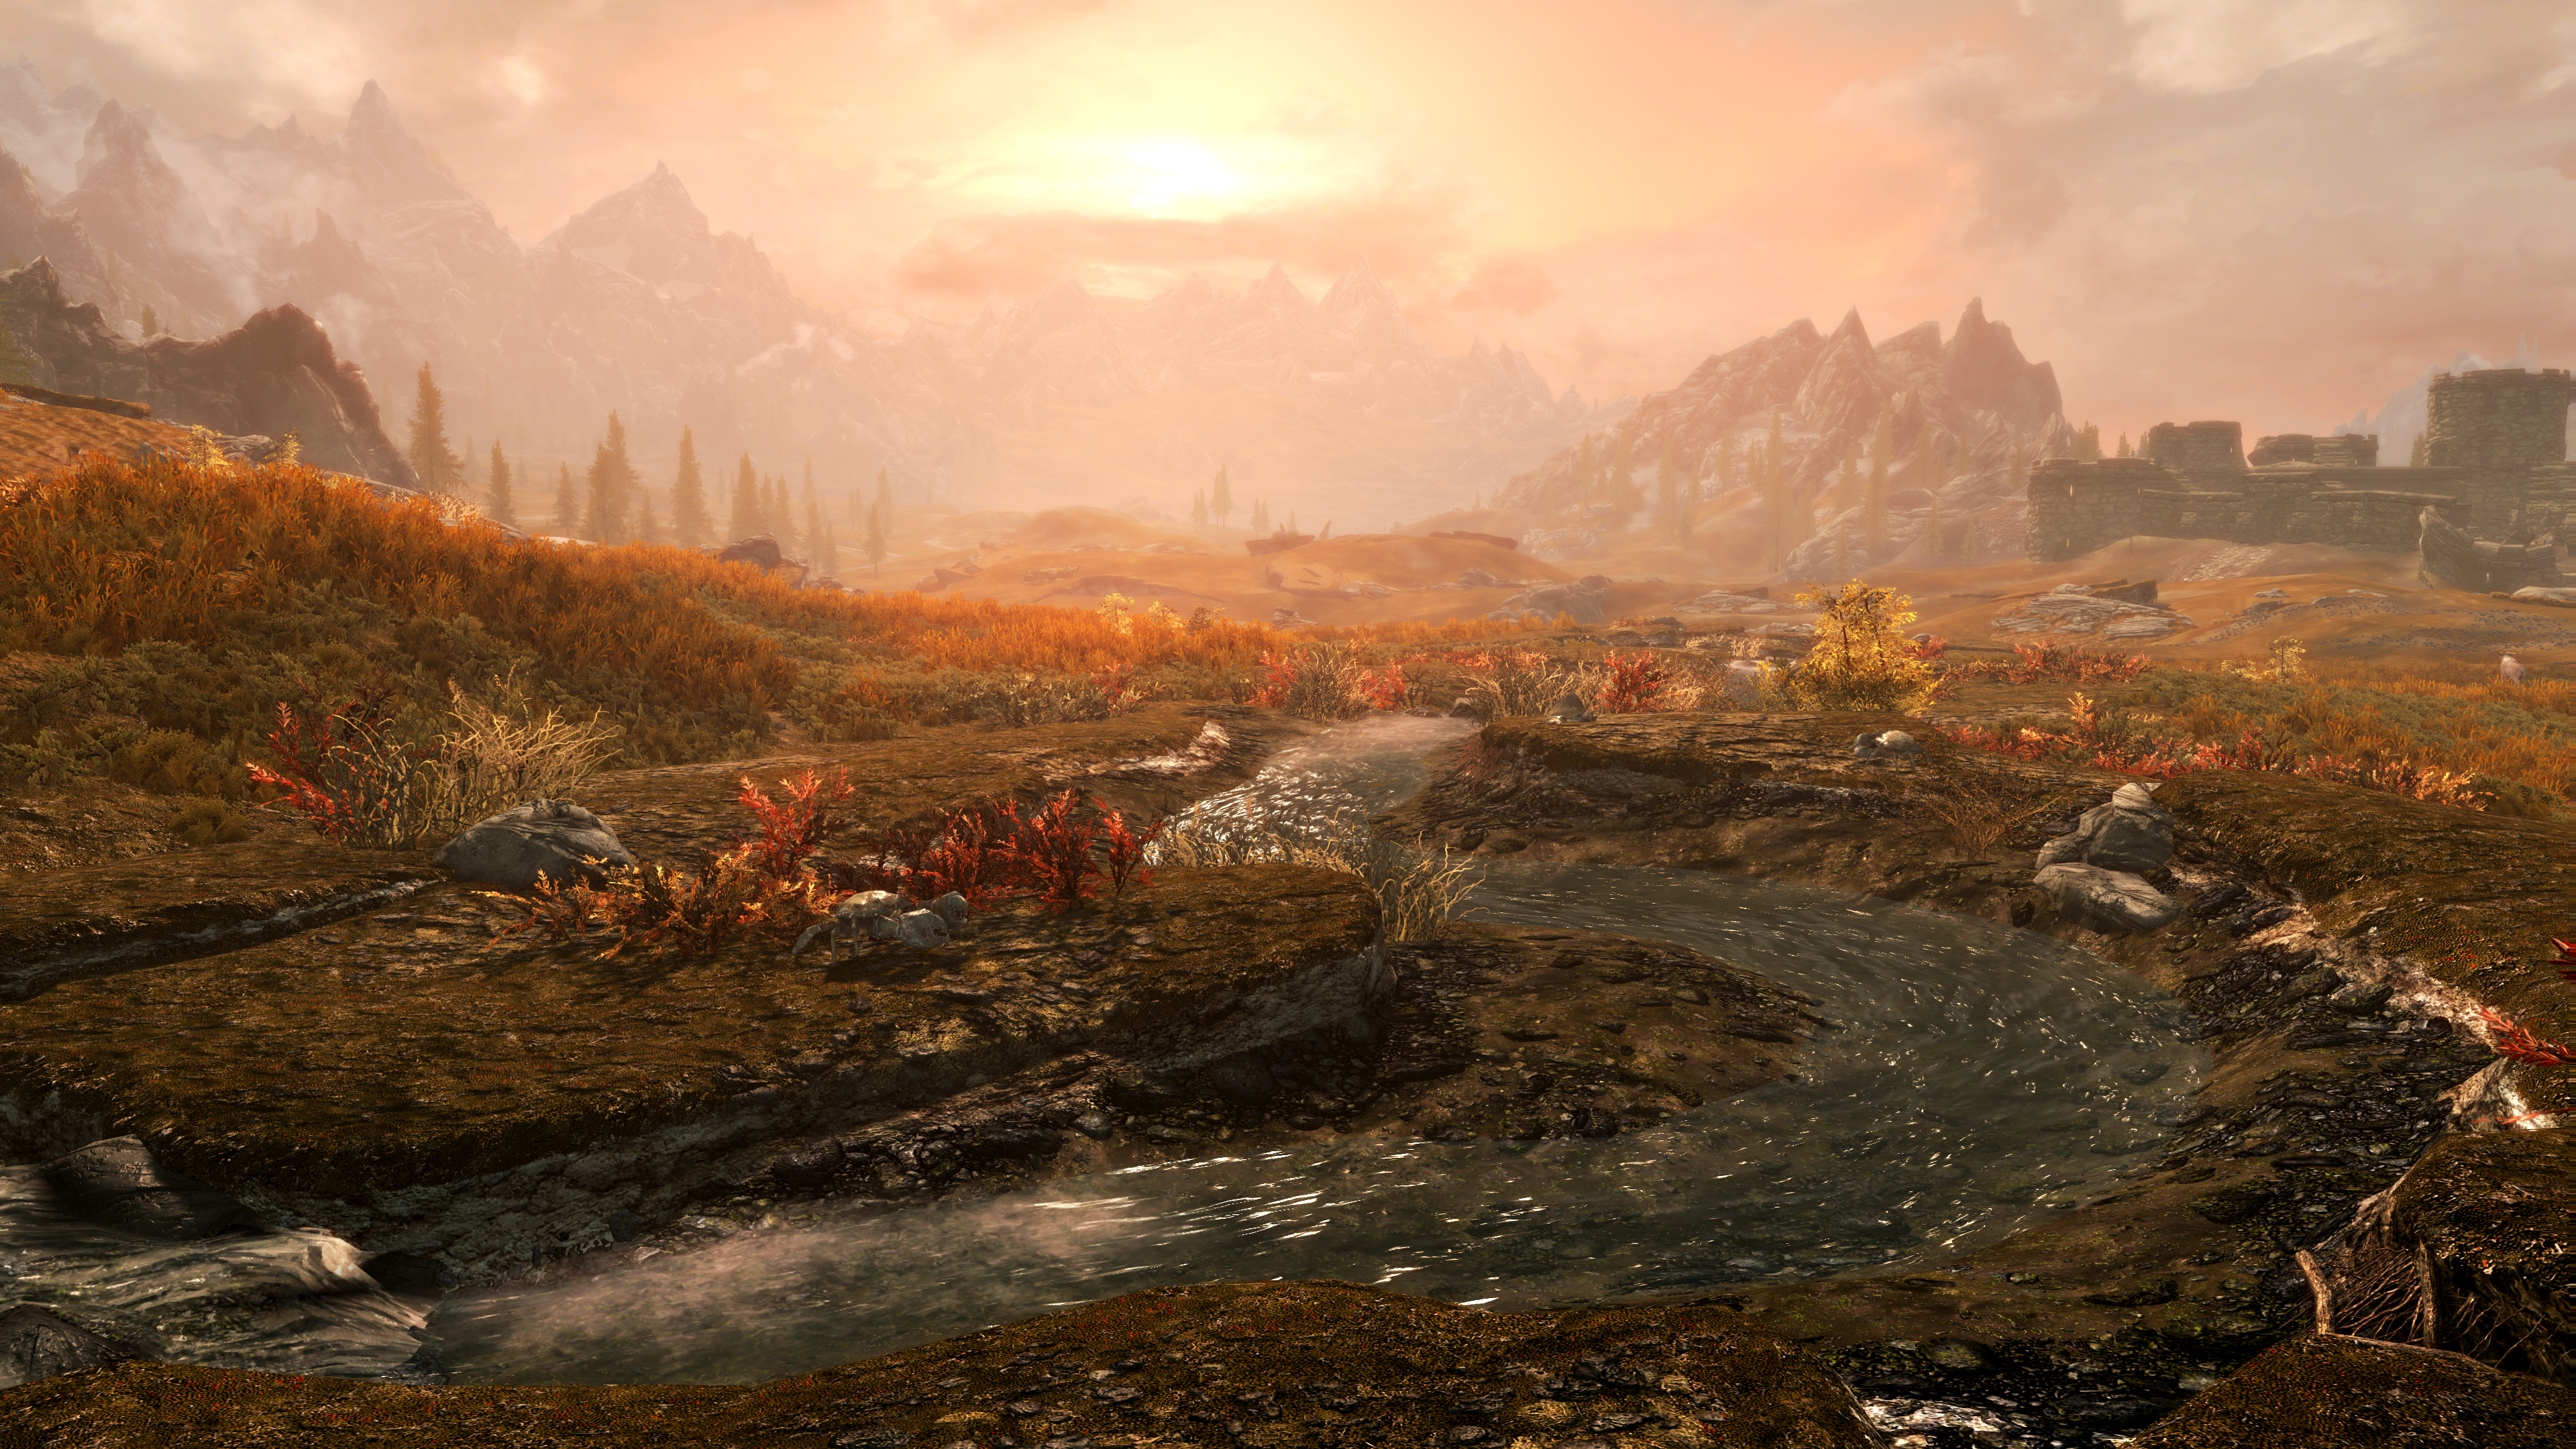 Mod Support Wille To Skyrim First We And Sony Have Worked Hard To Make  This Possible Mods On Playstation 4 Will Allow You To Modify And Create  Your